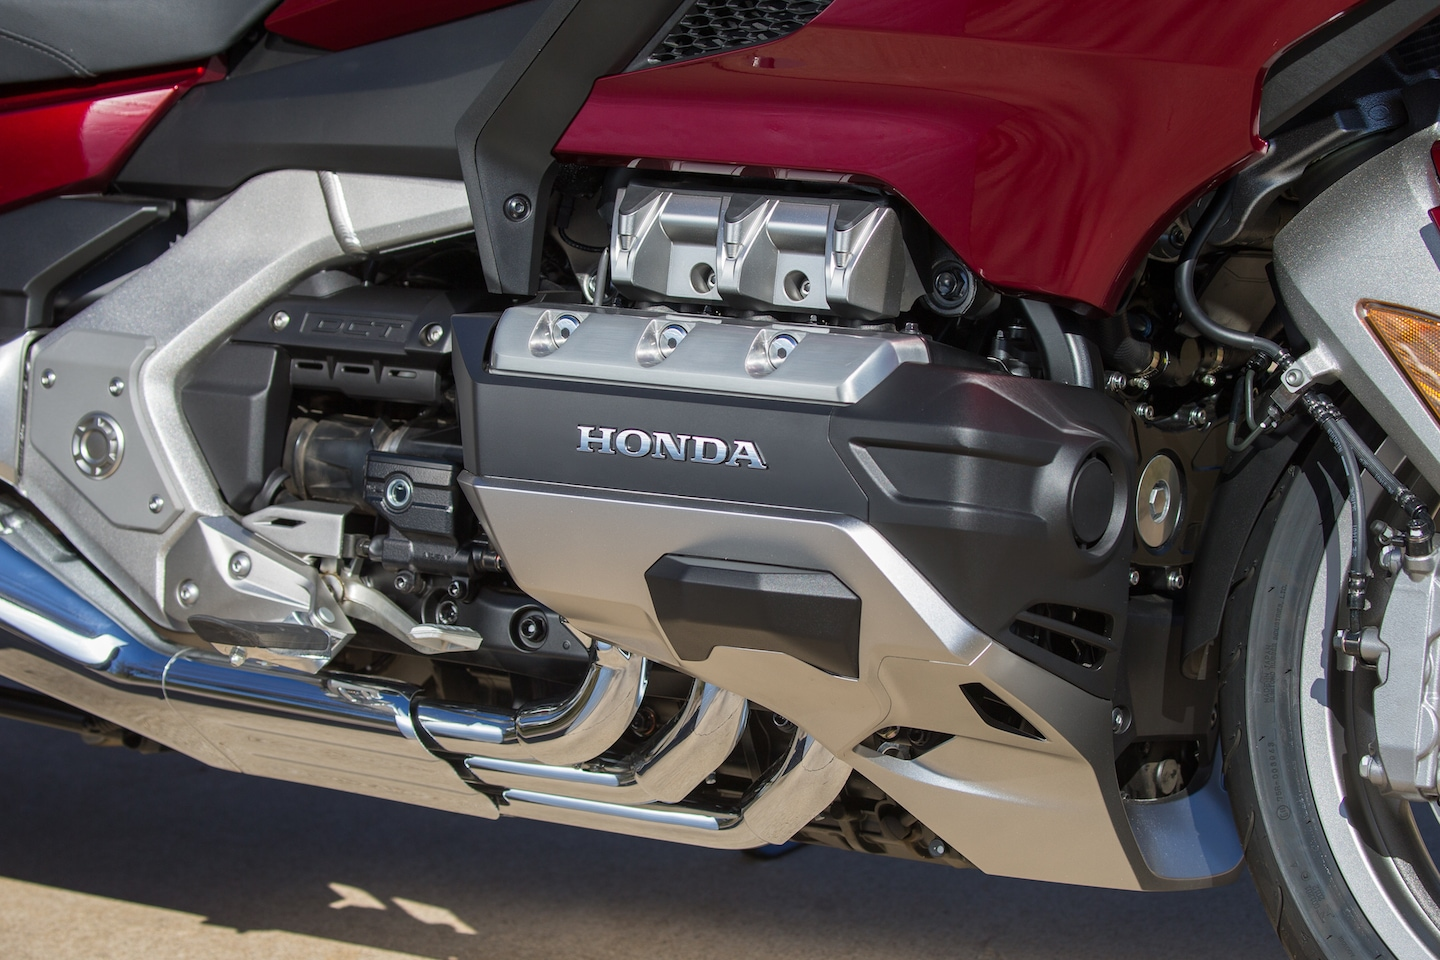 HONDA GOLD WING 2018 REVIEW – ON SHINY WINGS - RISER | Biker